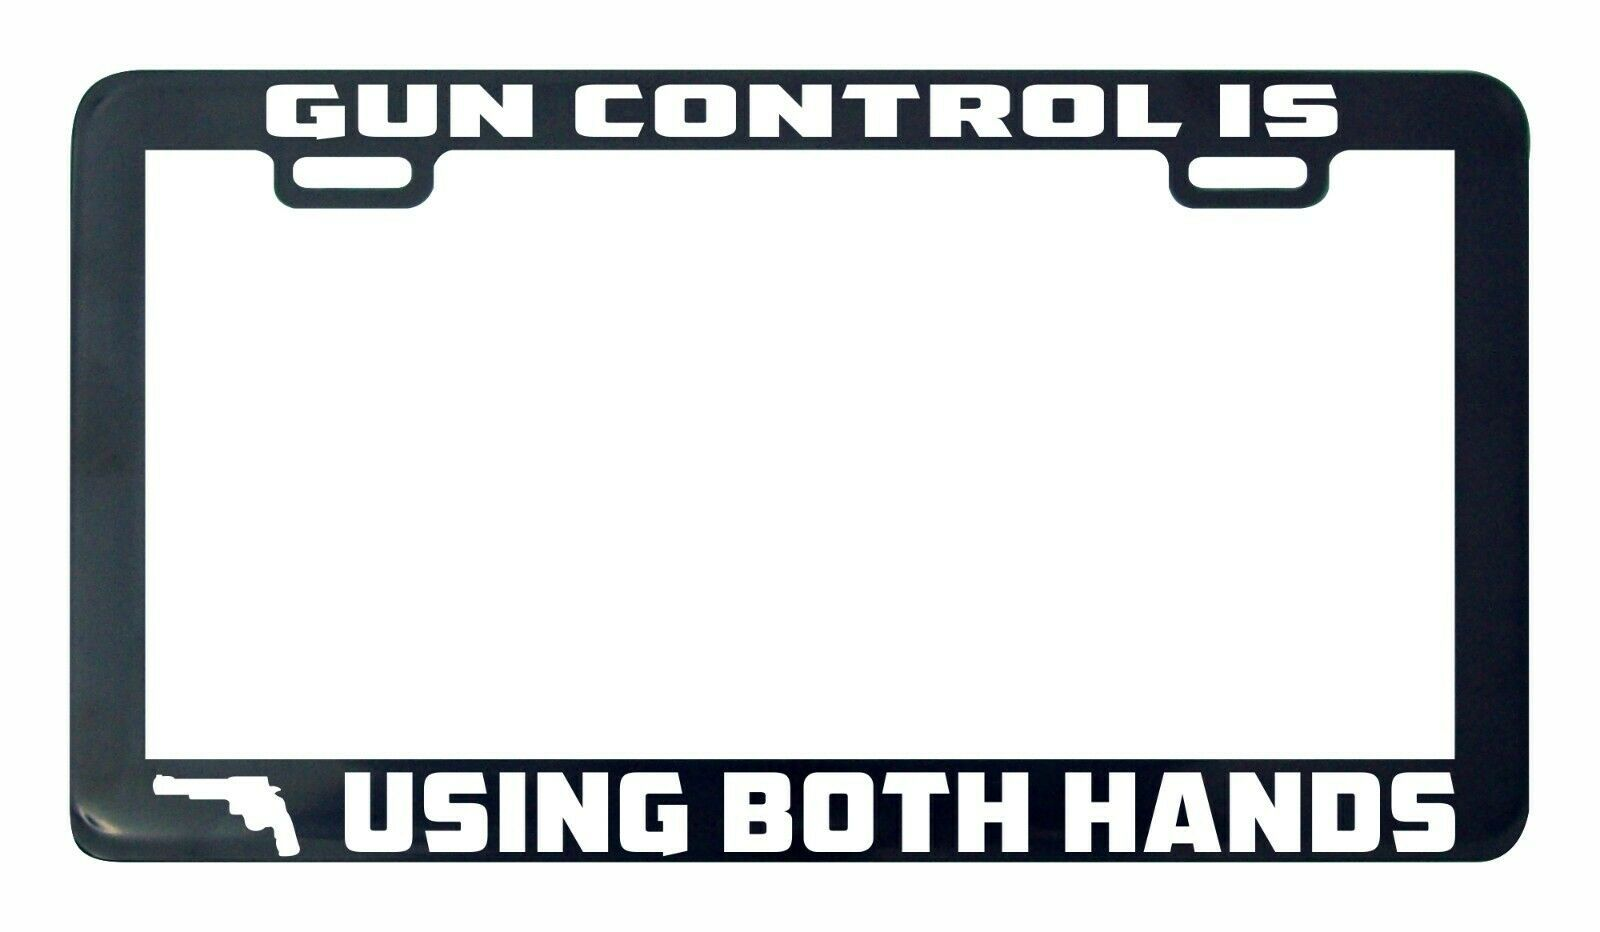 Primary image for Gun control is using both hands license plate frame holder